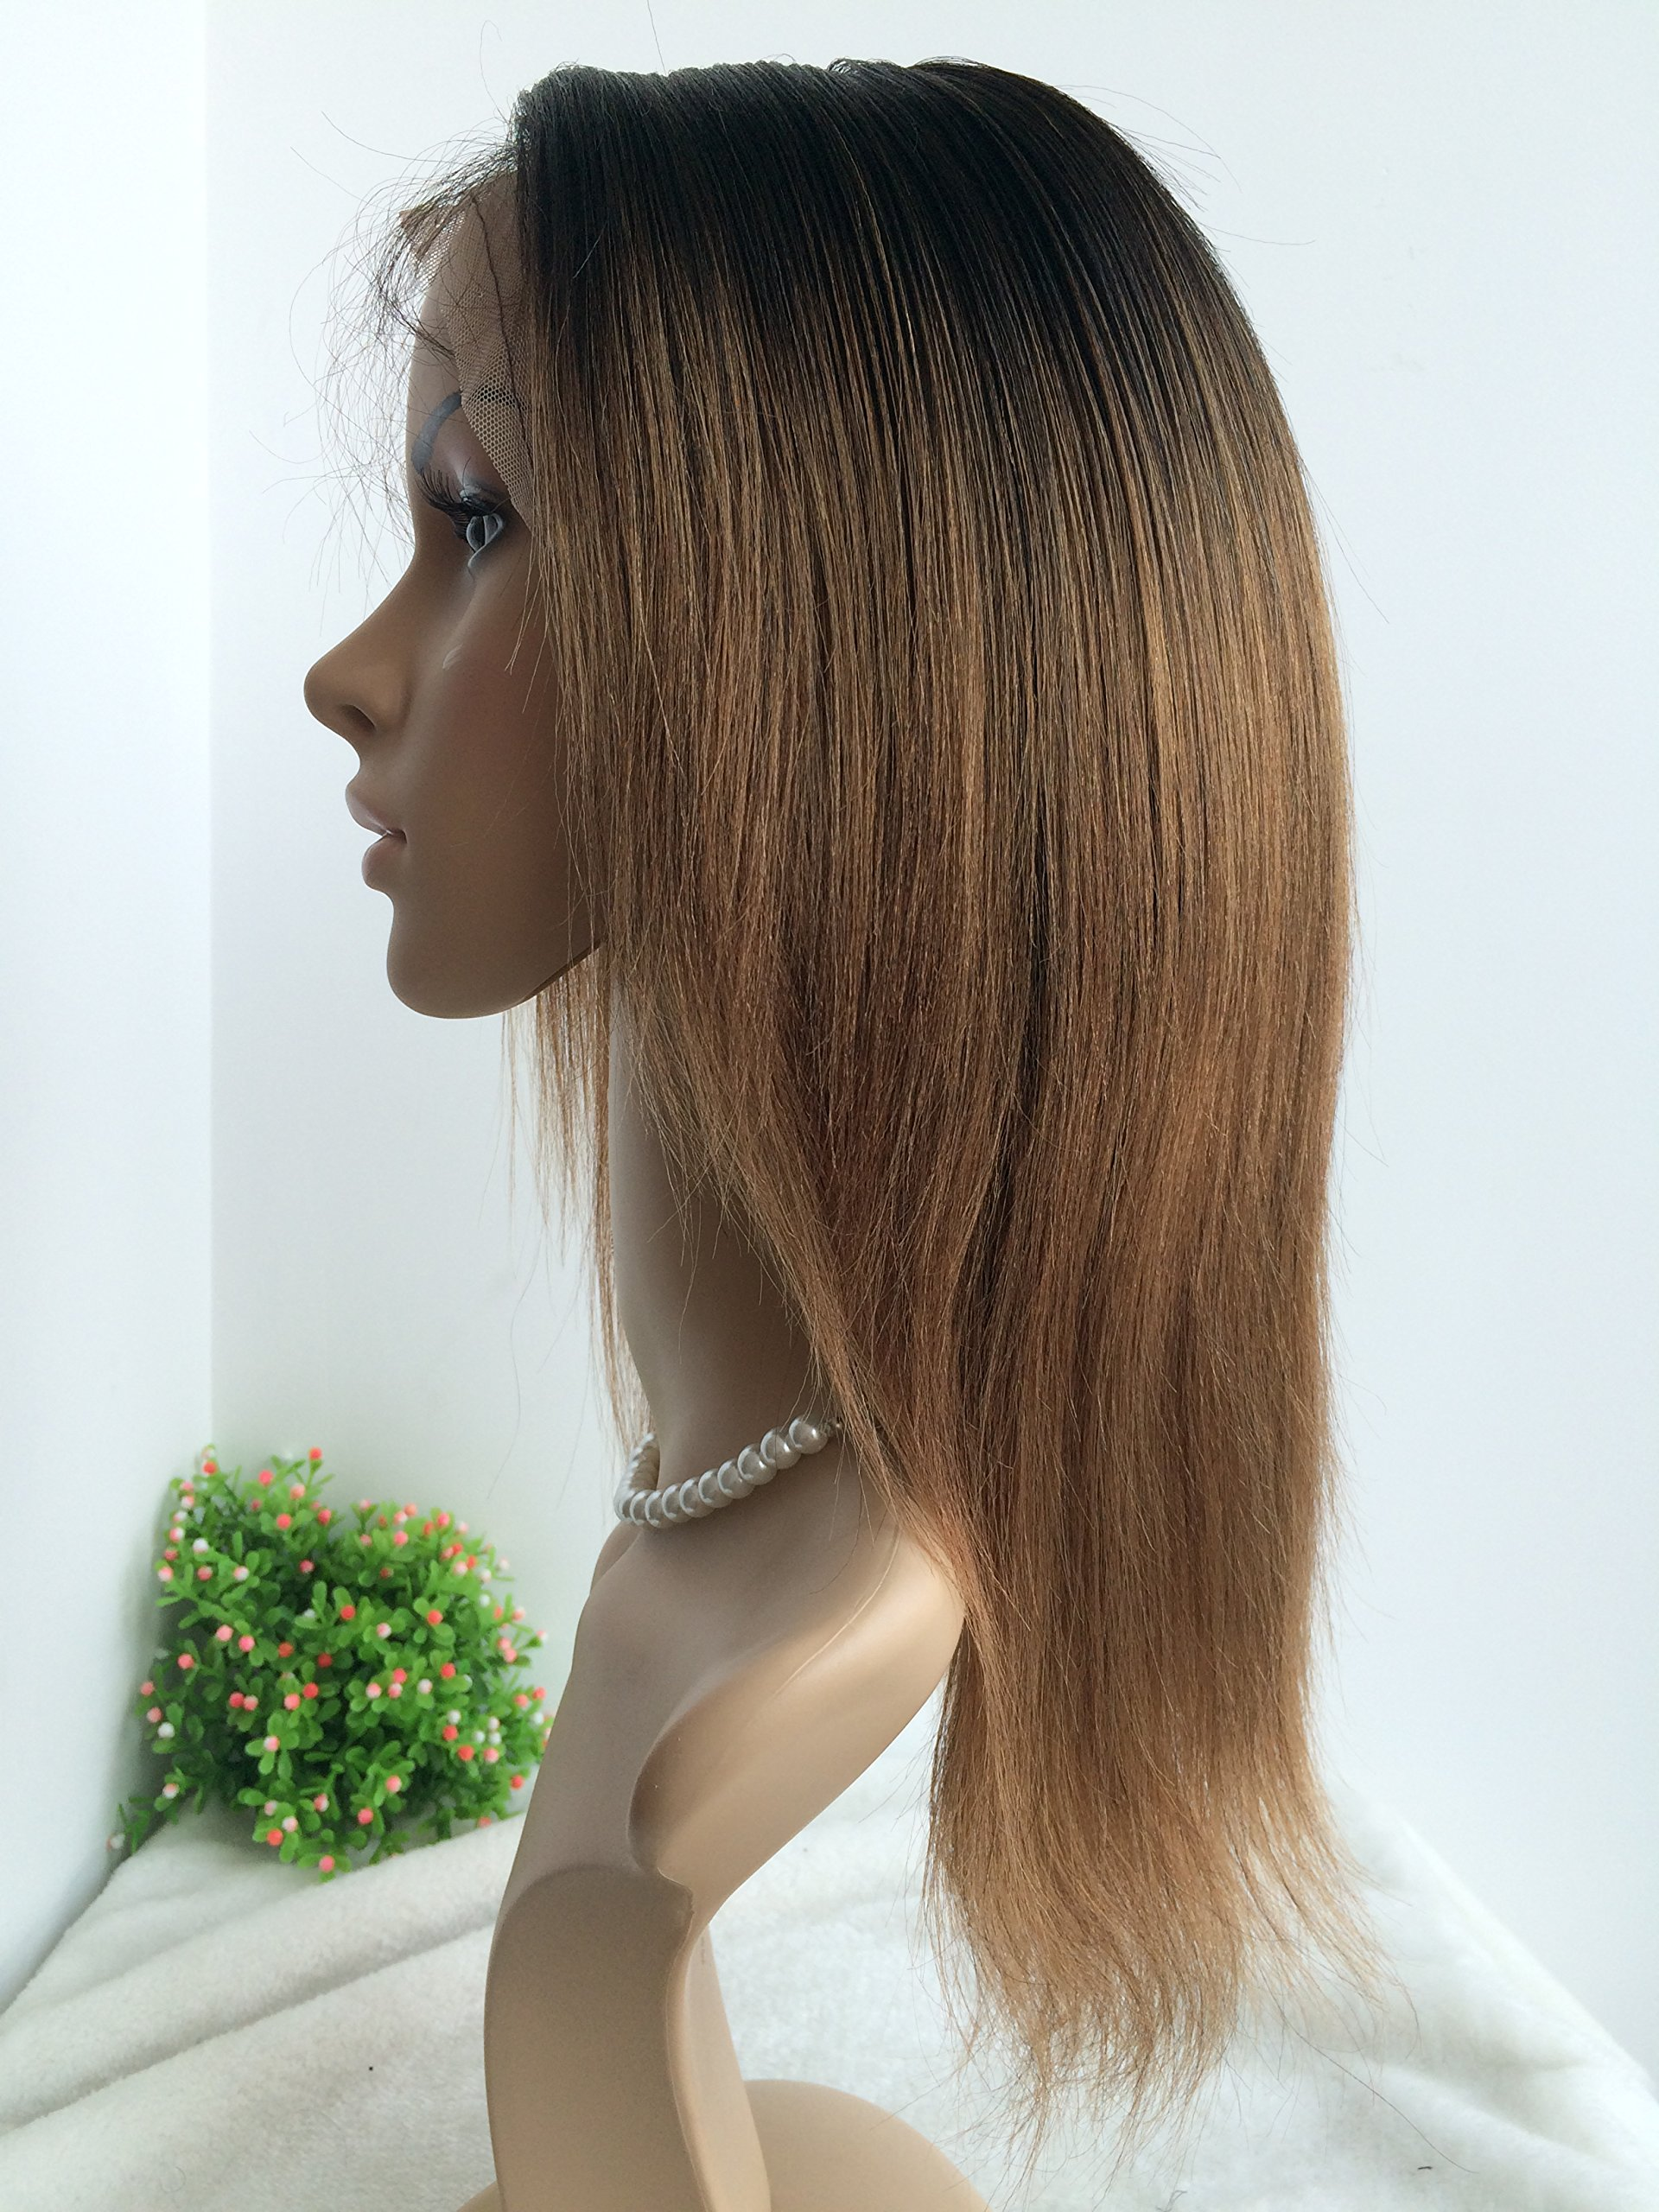 CHINESE VIRGIN 10 INCH,LIGHT YAKI,FULL LACE WIGS SILK TOP,BLEACHED KNOTS--hot sale product!!! by April silk top wigs (Image #2)